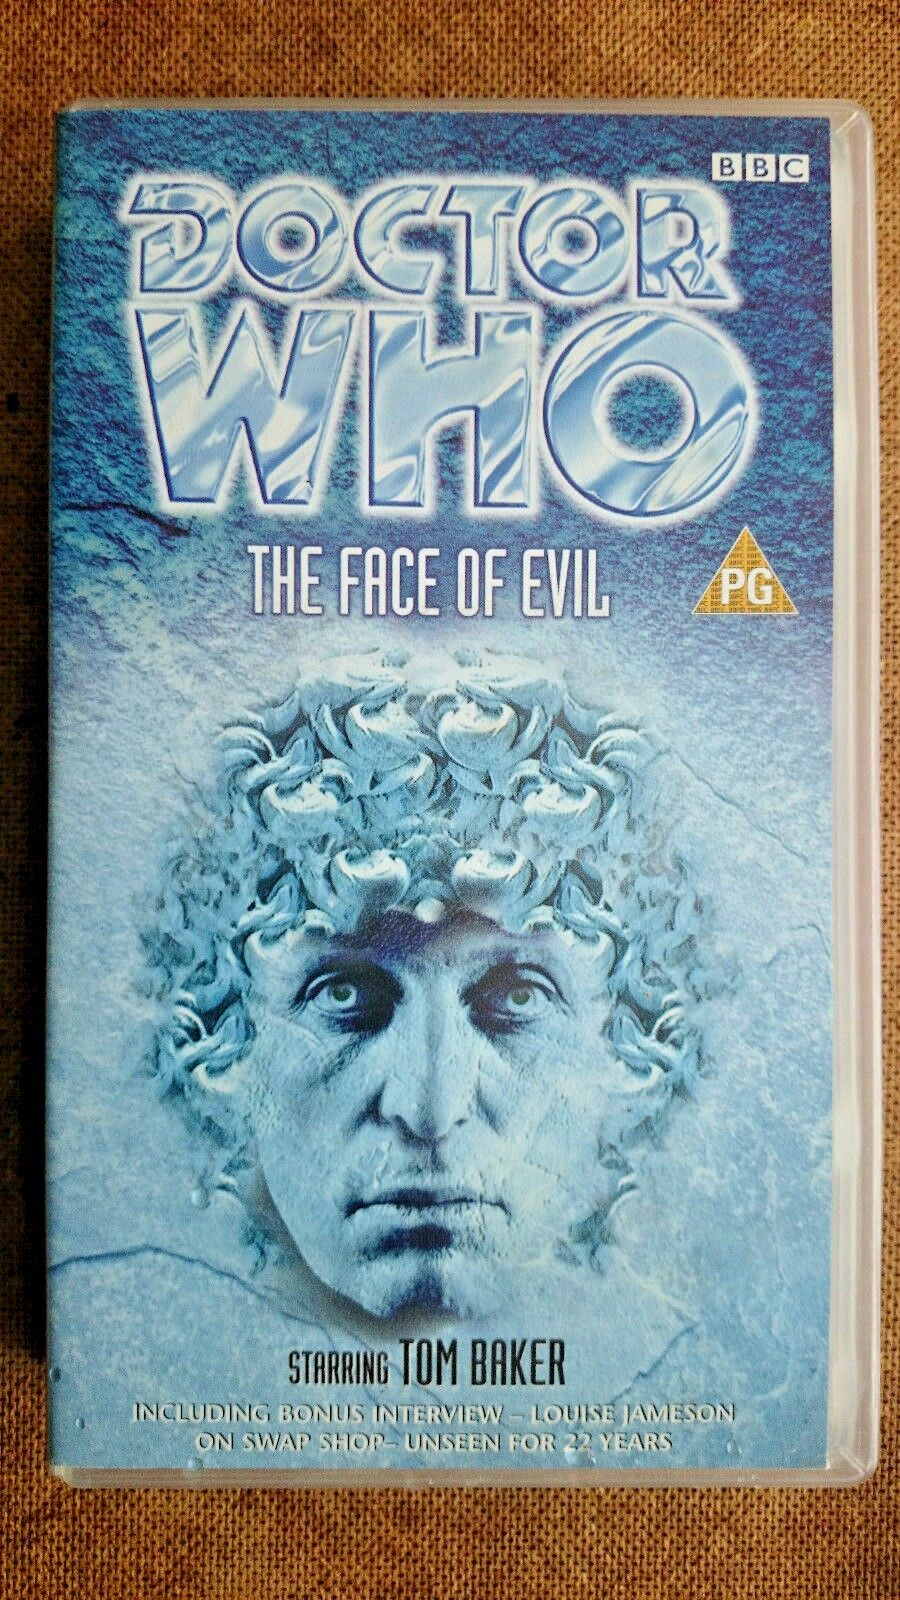 Doctor Who - The Face Of Evil (VHS, 1999) - Tom Baker